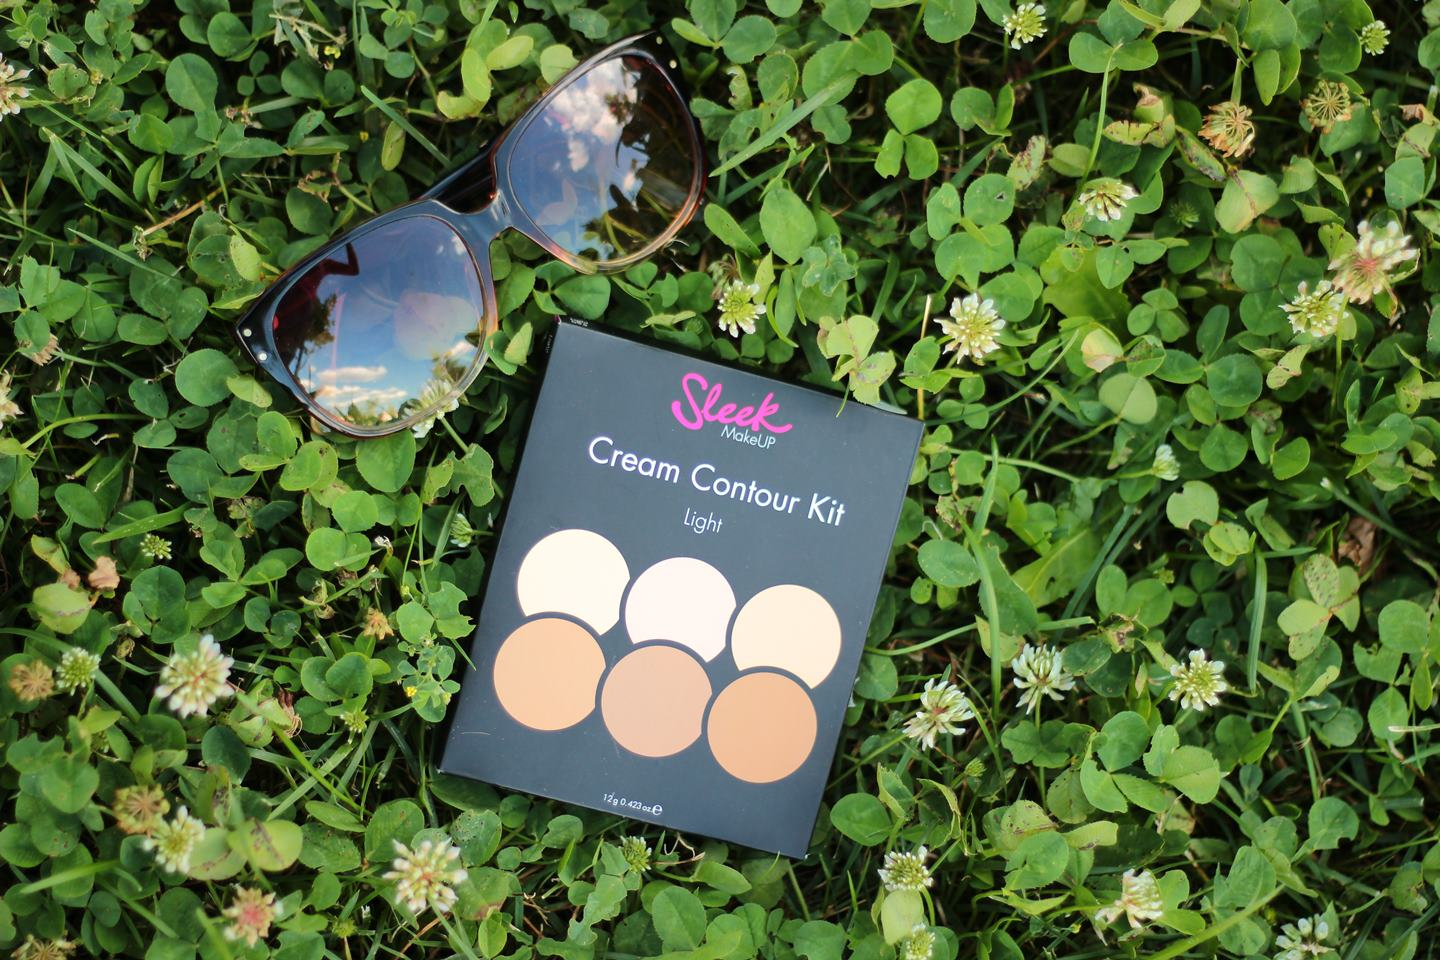 sleek-cream-contour-kit